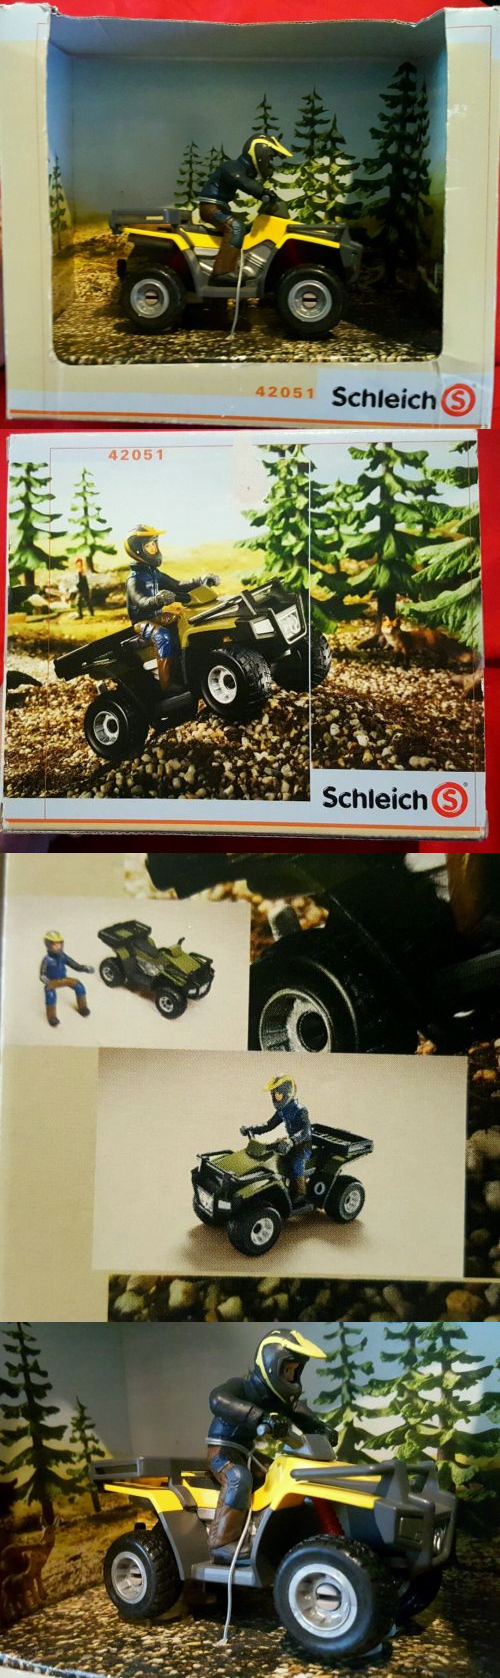 Animals and Nature 31744: Schleich Quad Bike With Driver #42051 Discontinued Hand Painted Extreme Detail -> BUY IT NOW ONLY: $49.97 on eBay!